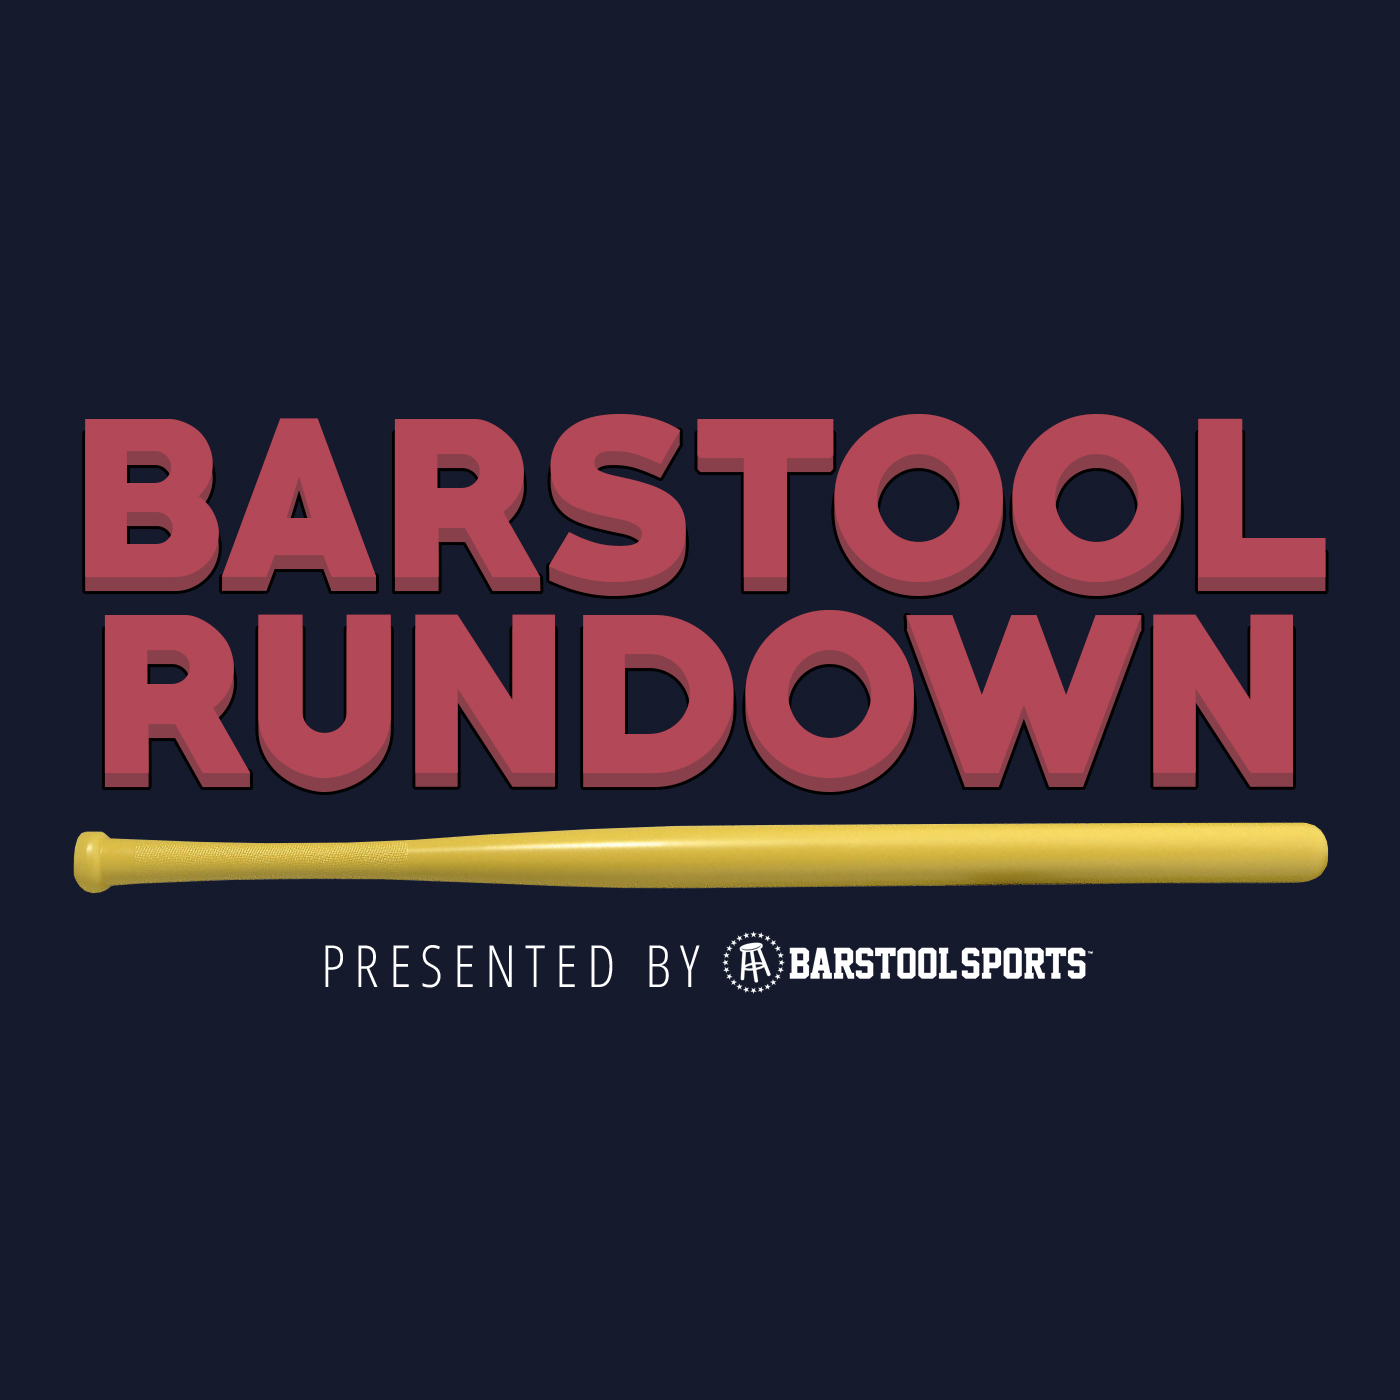 Barstool Rundown - May 21, 2018